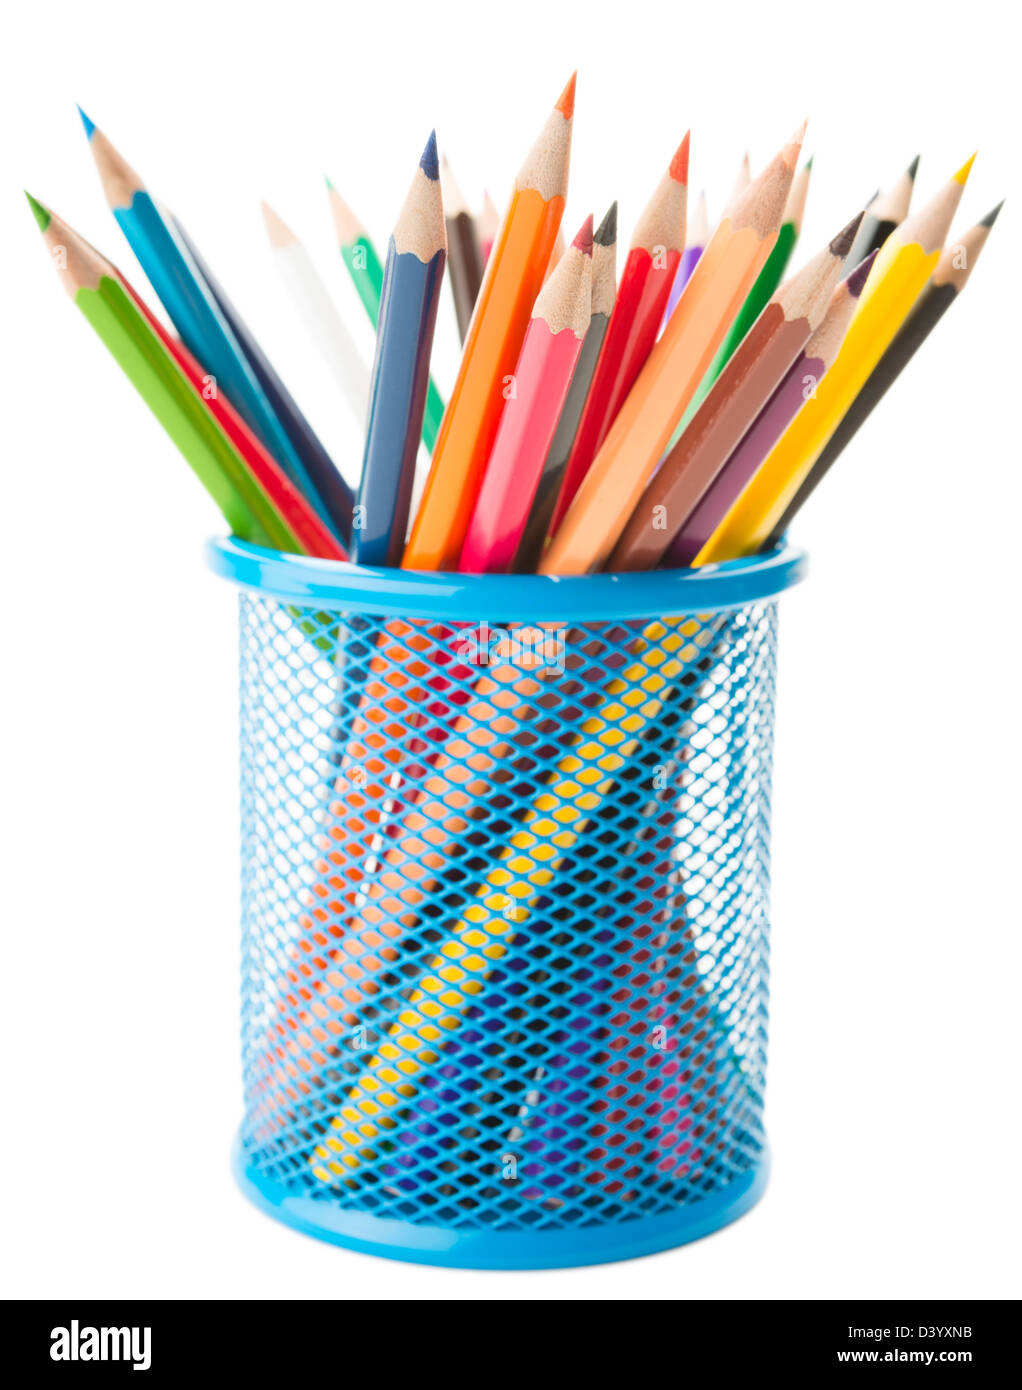 Color pencils in a basket - Stock Image